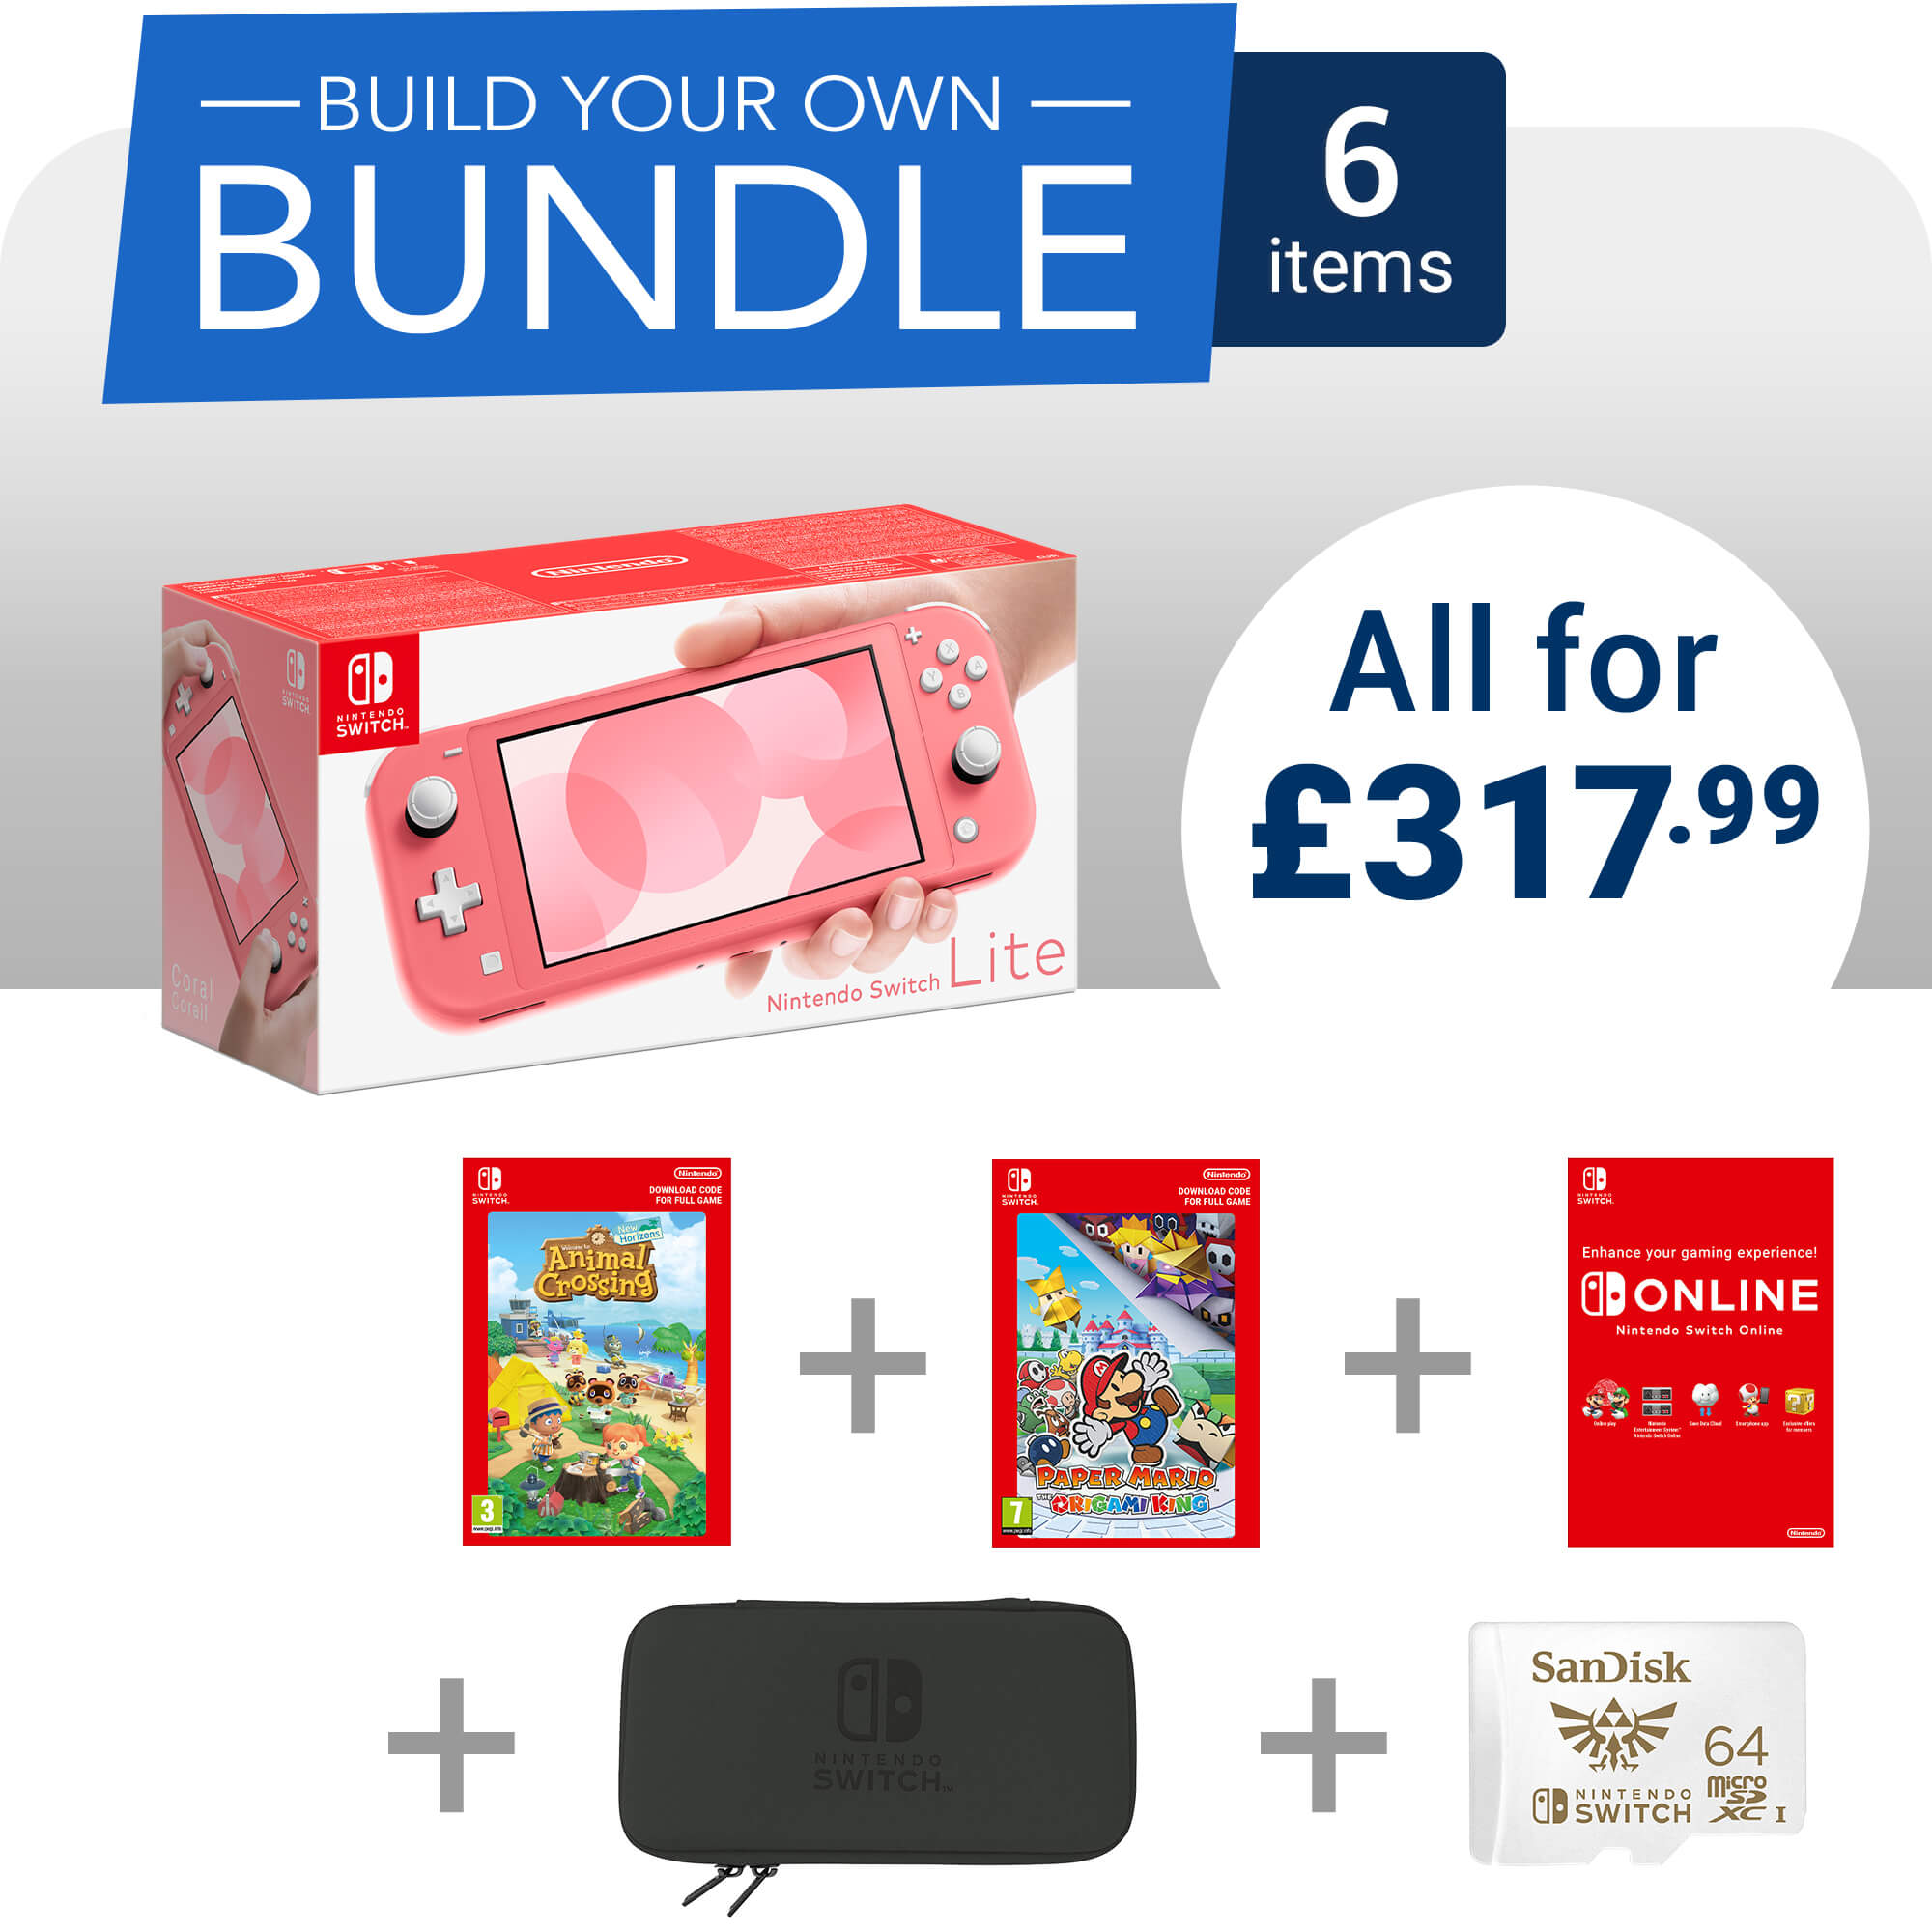 Build your own Nintendo Switch Lite bundle for only £317.99